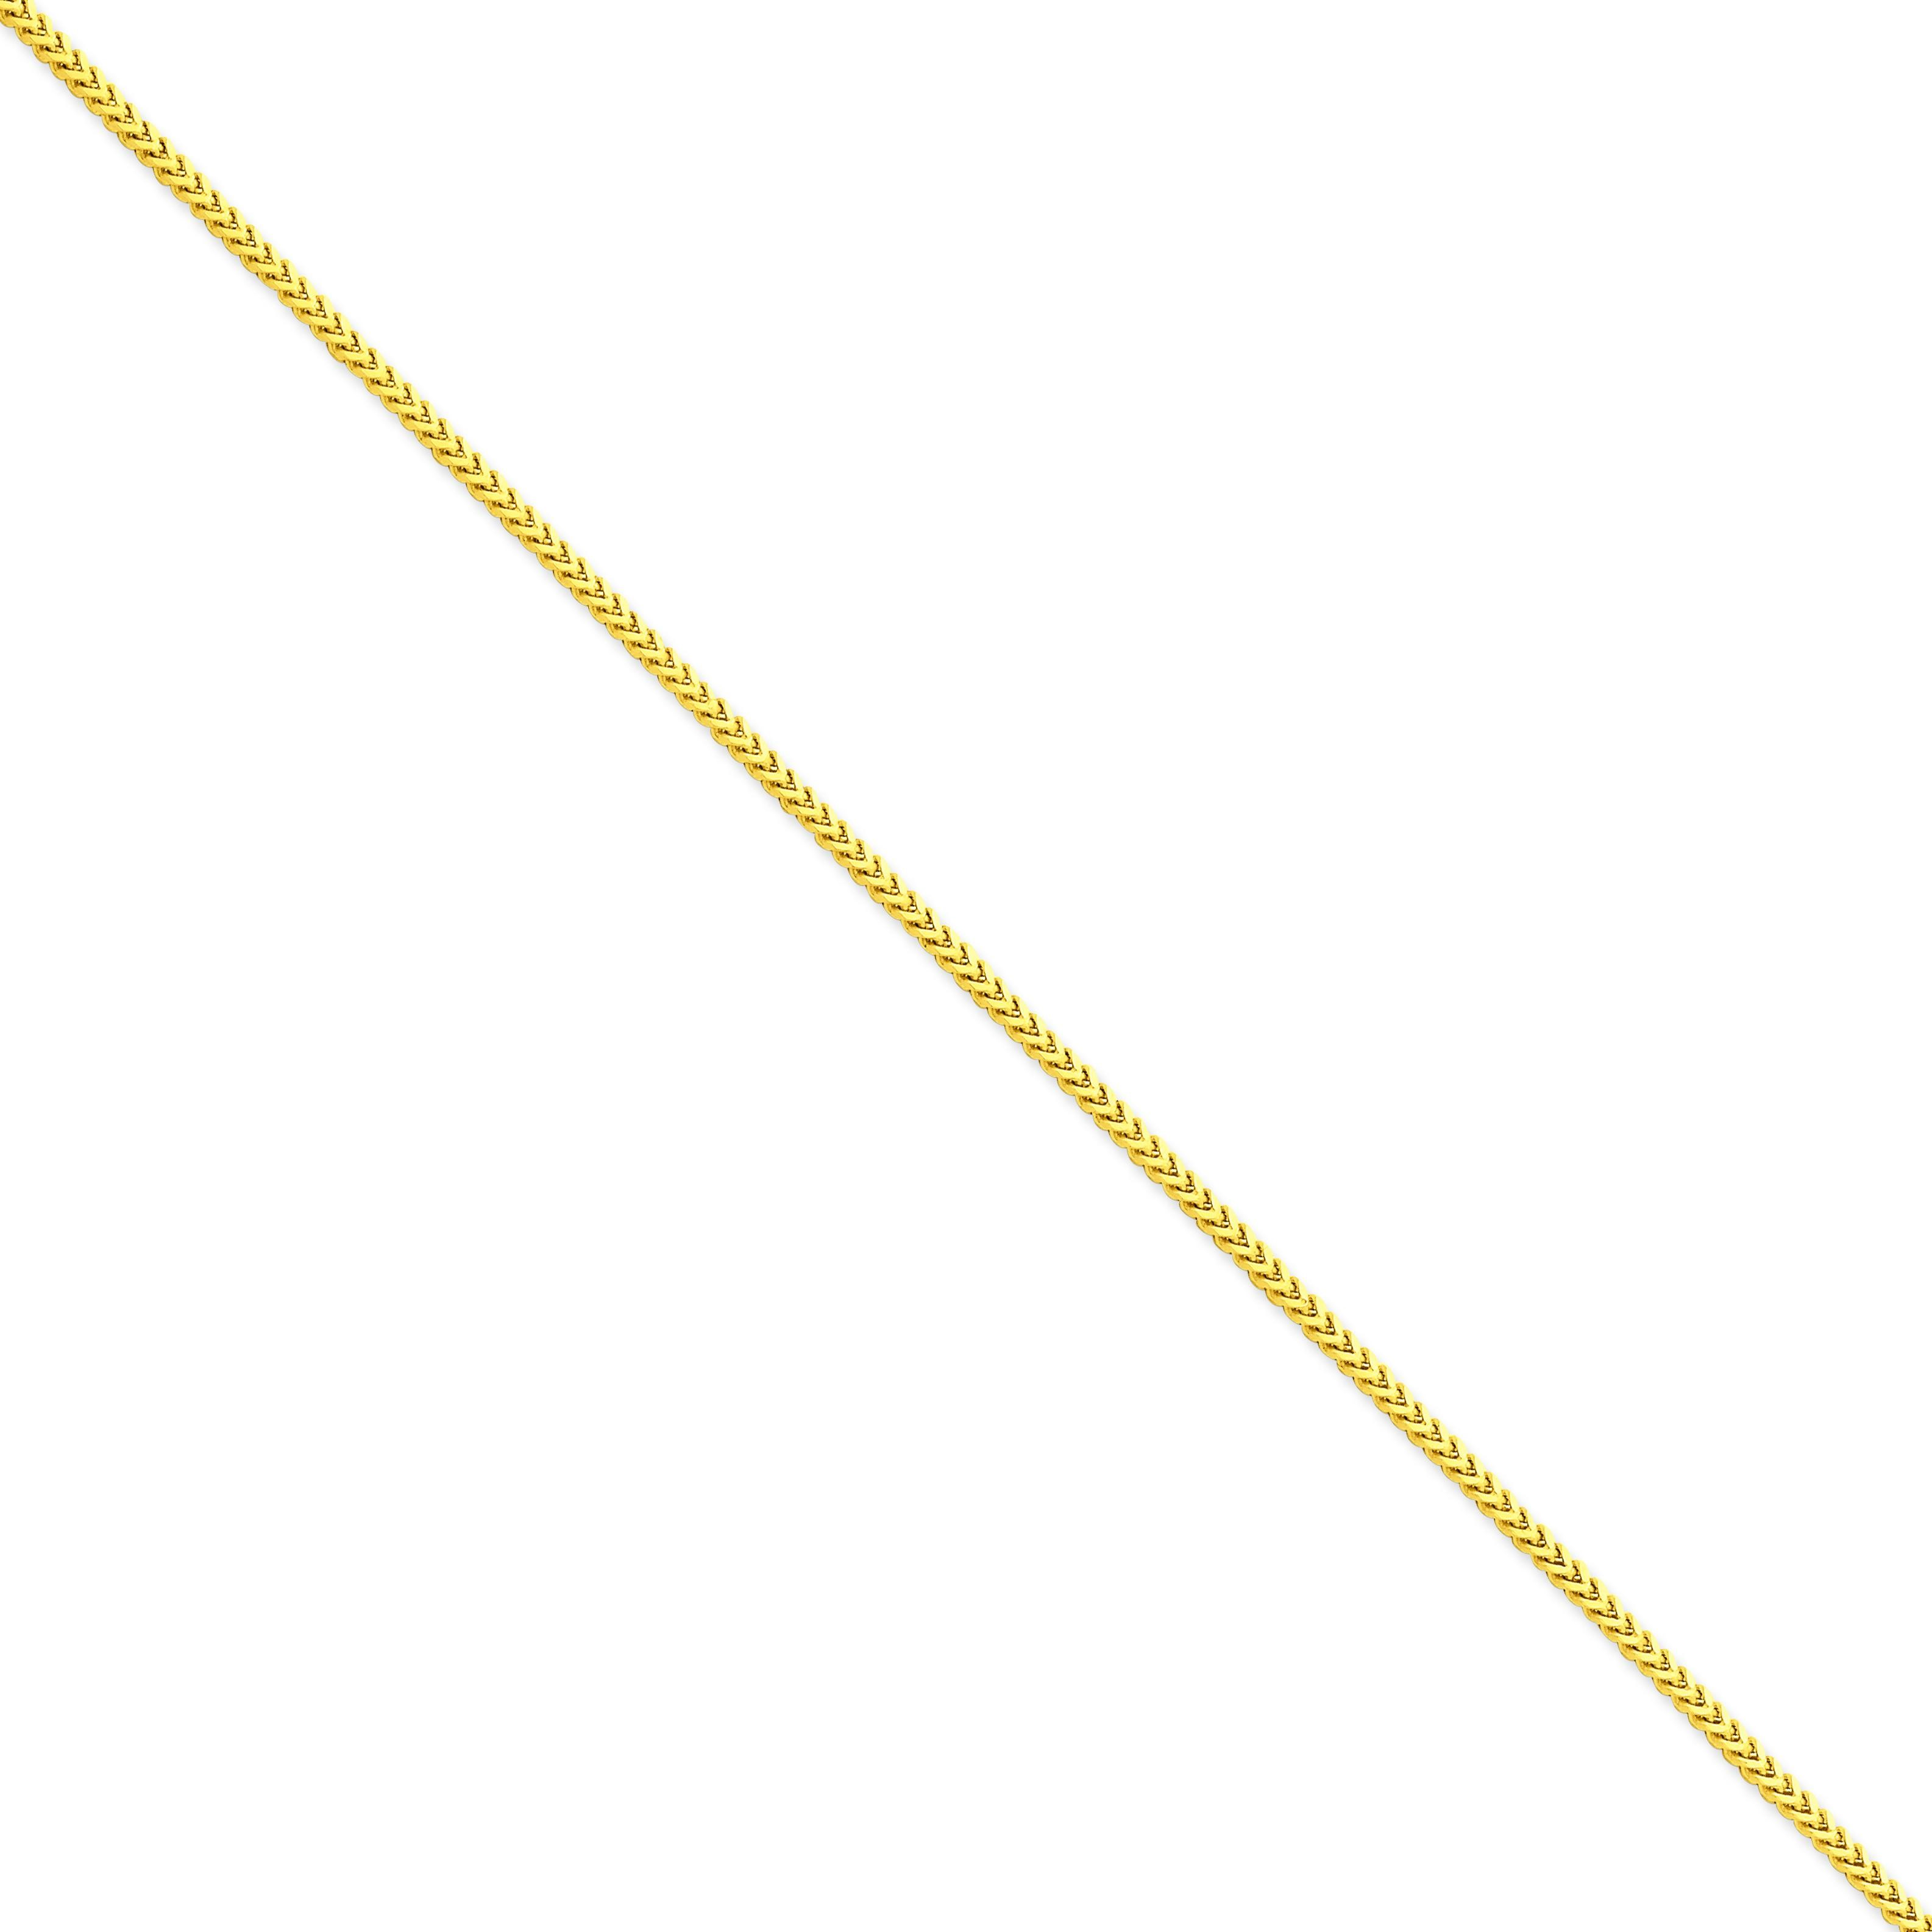 Franco Chain in 14k Yellow Gold